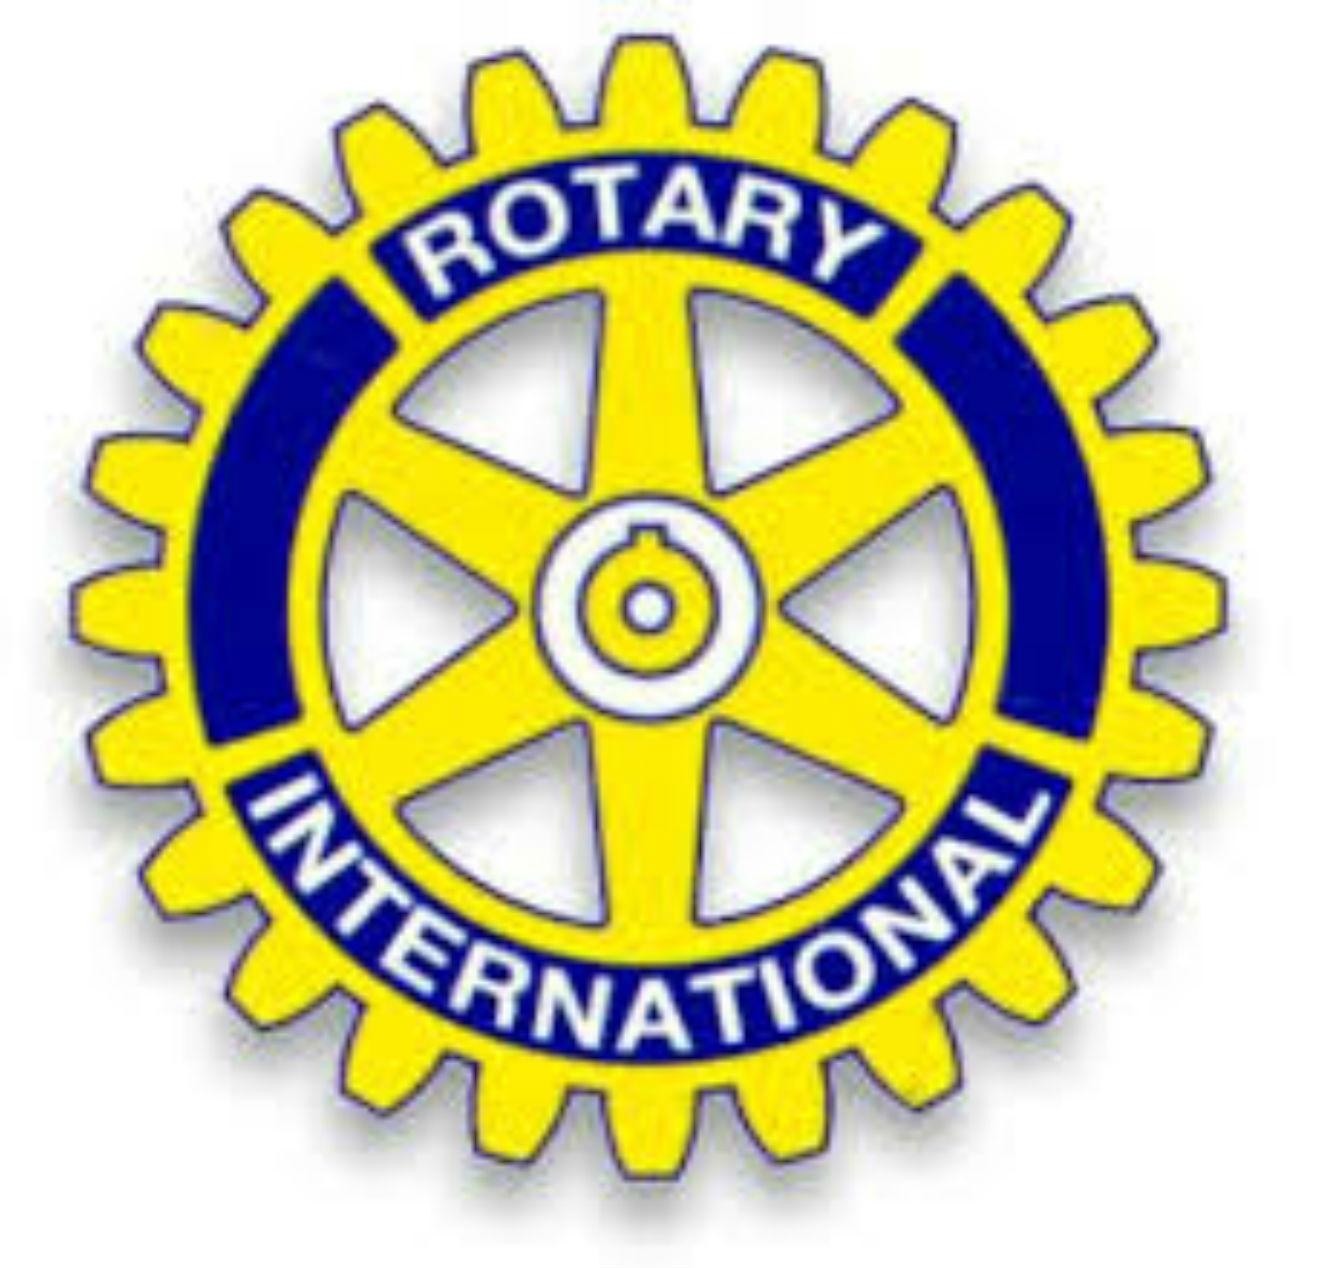 Rotary clubs in Skipton are supporting the  Rotary Youth Leadership Awards schemes